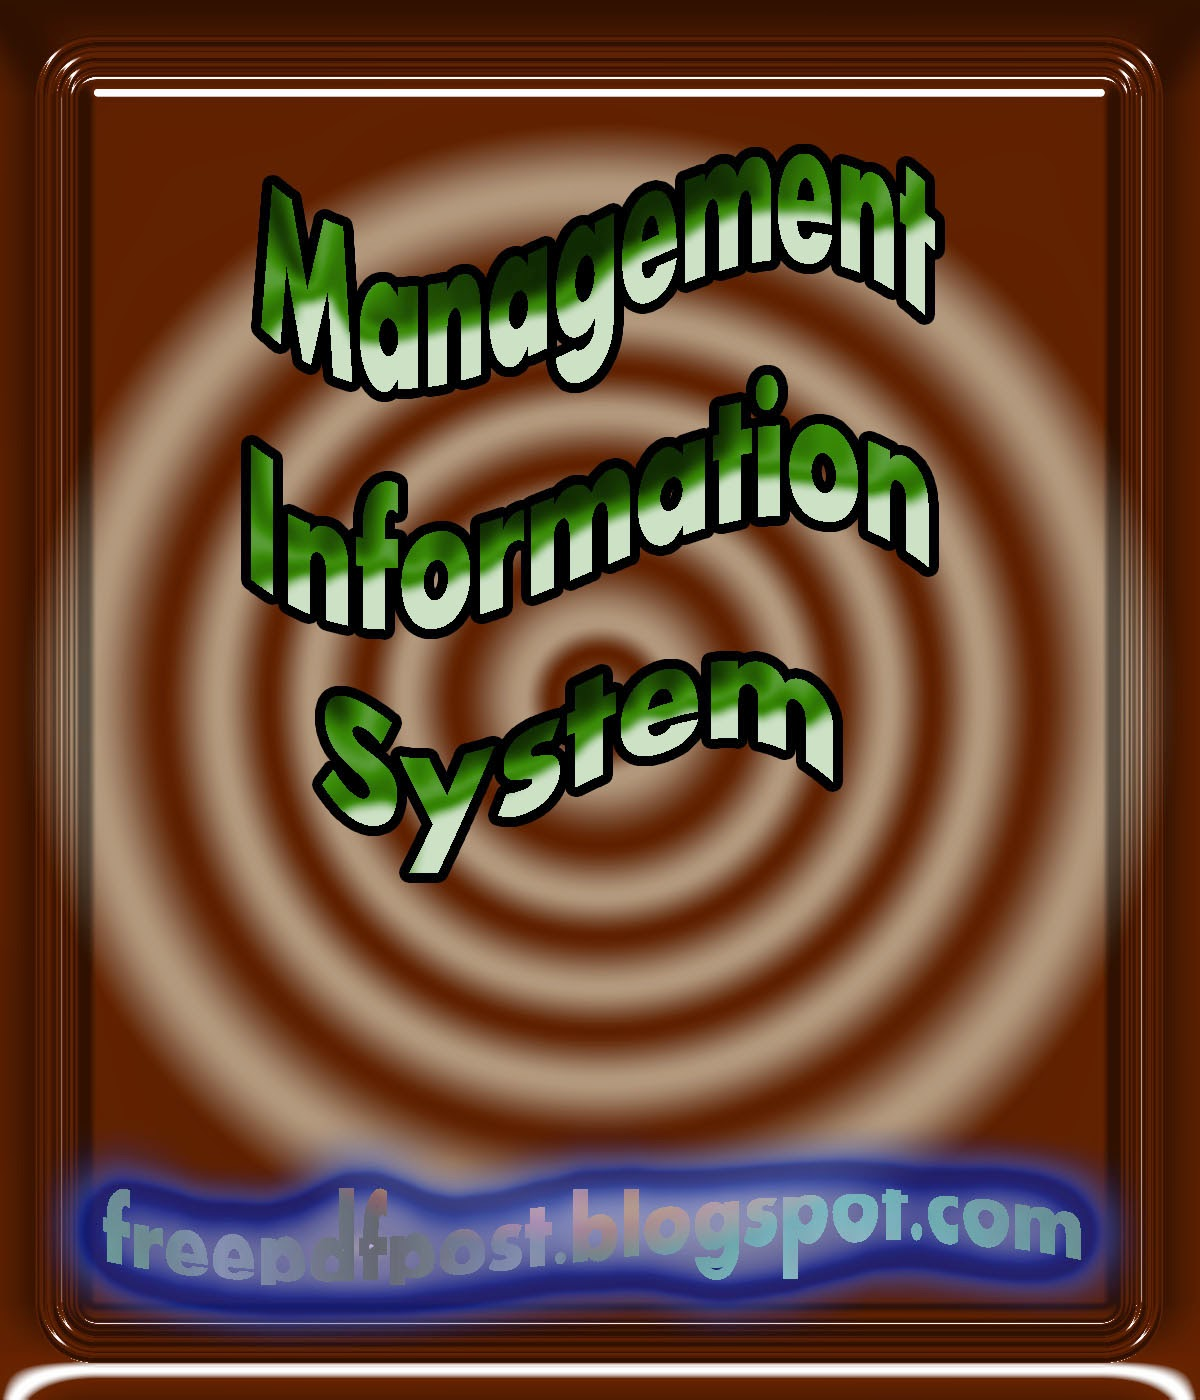 https://www.4shared.com/office/s_U7Ofaice/Management_Information_System_.html